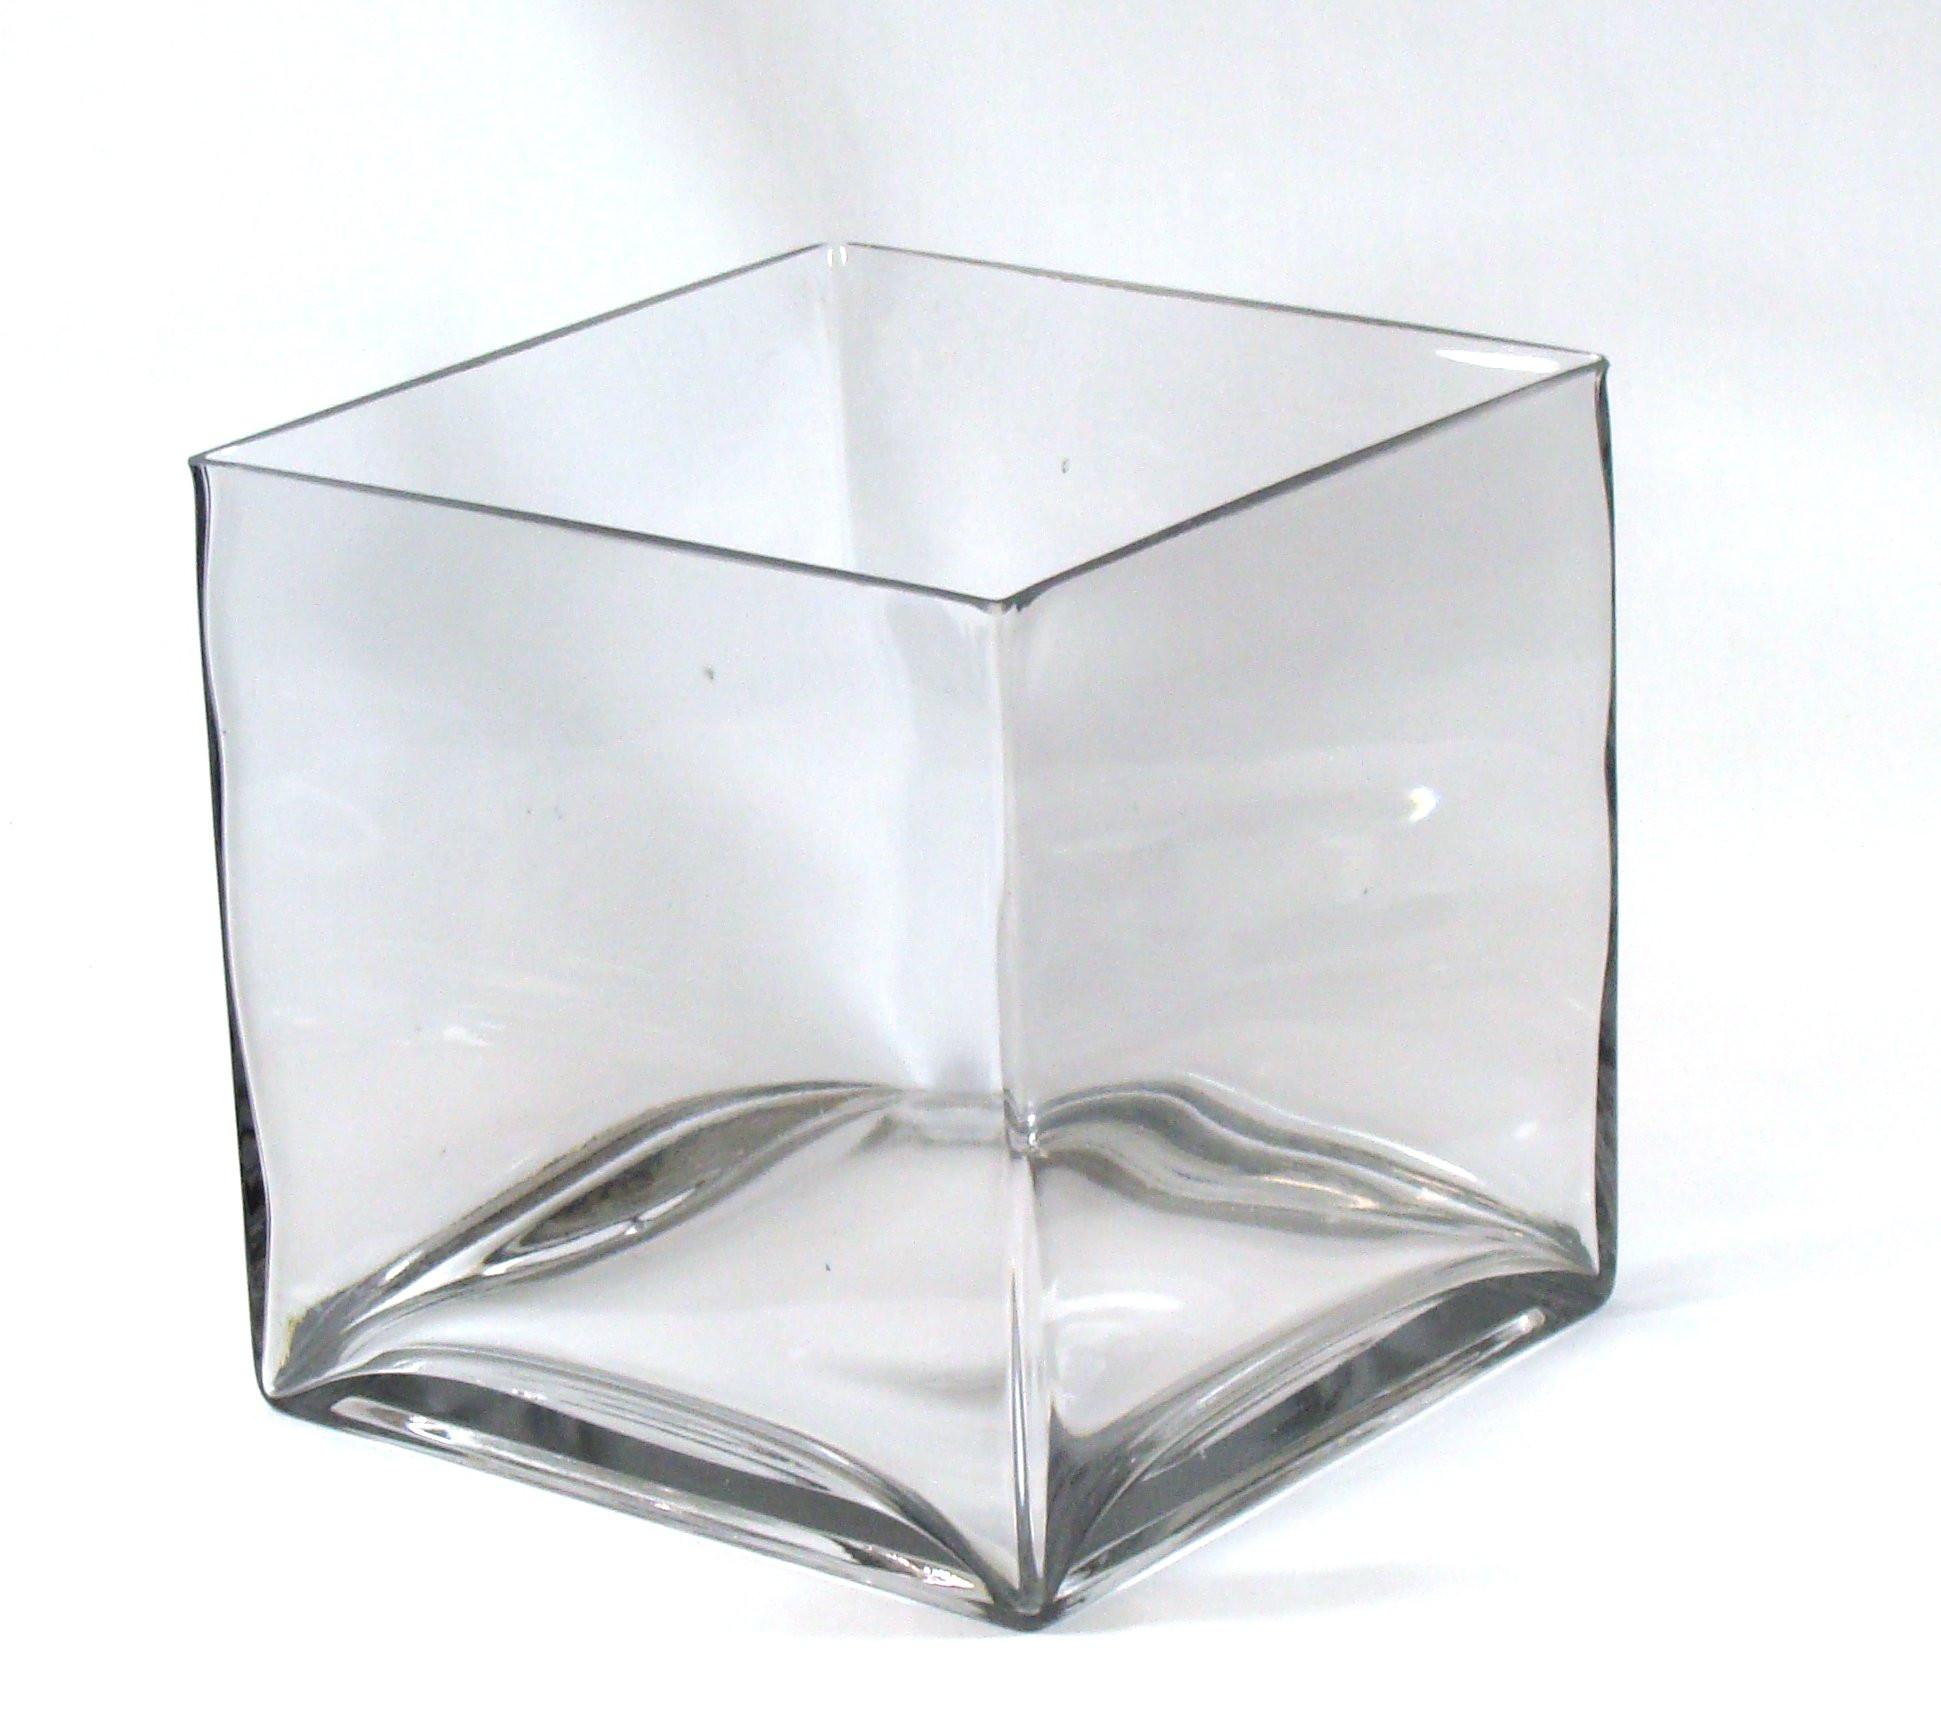 36 inch cylinder vase of buy 8 inch round large glass vase 8 clear cylinder oversize regarding 8 square large glass vase 8 inch clear cube oversize centerpiece 8x8x8 candleholder